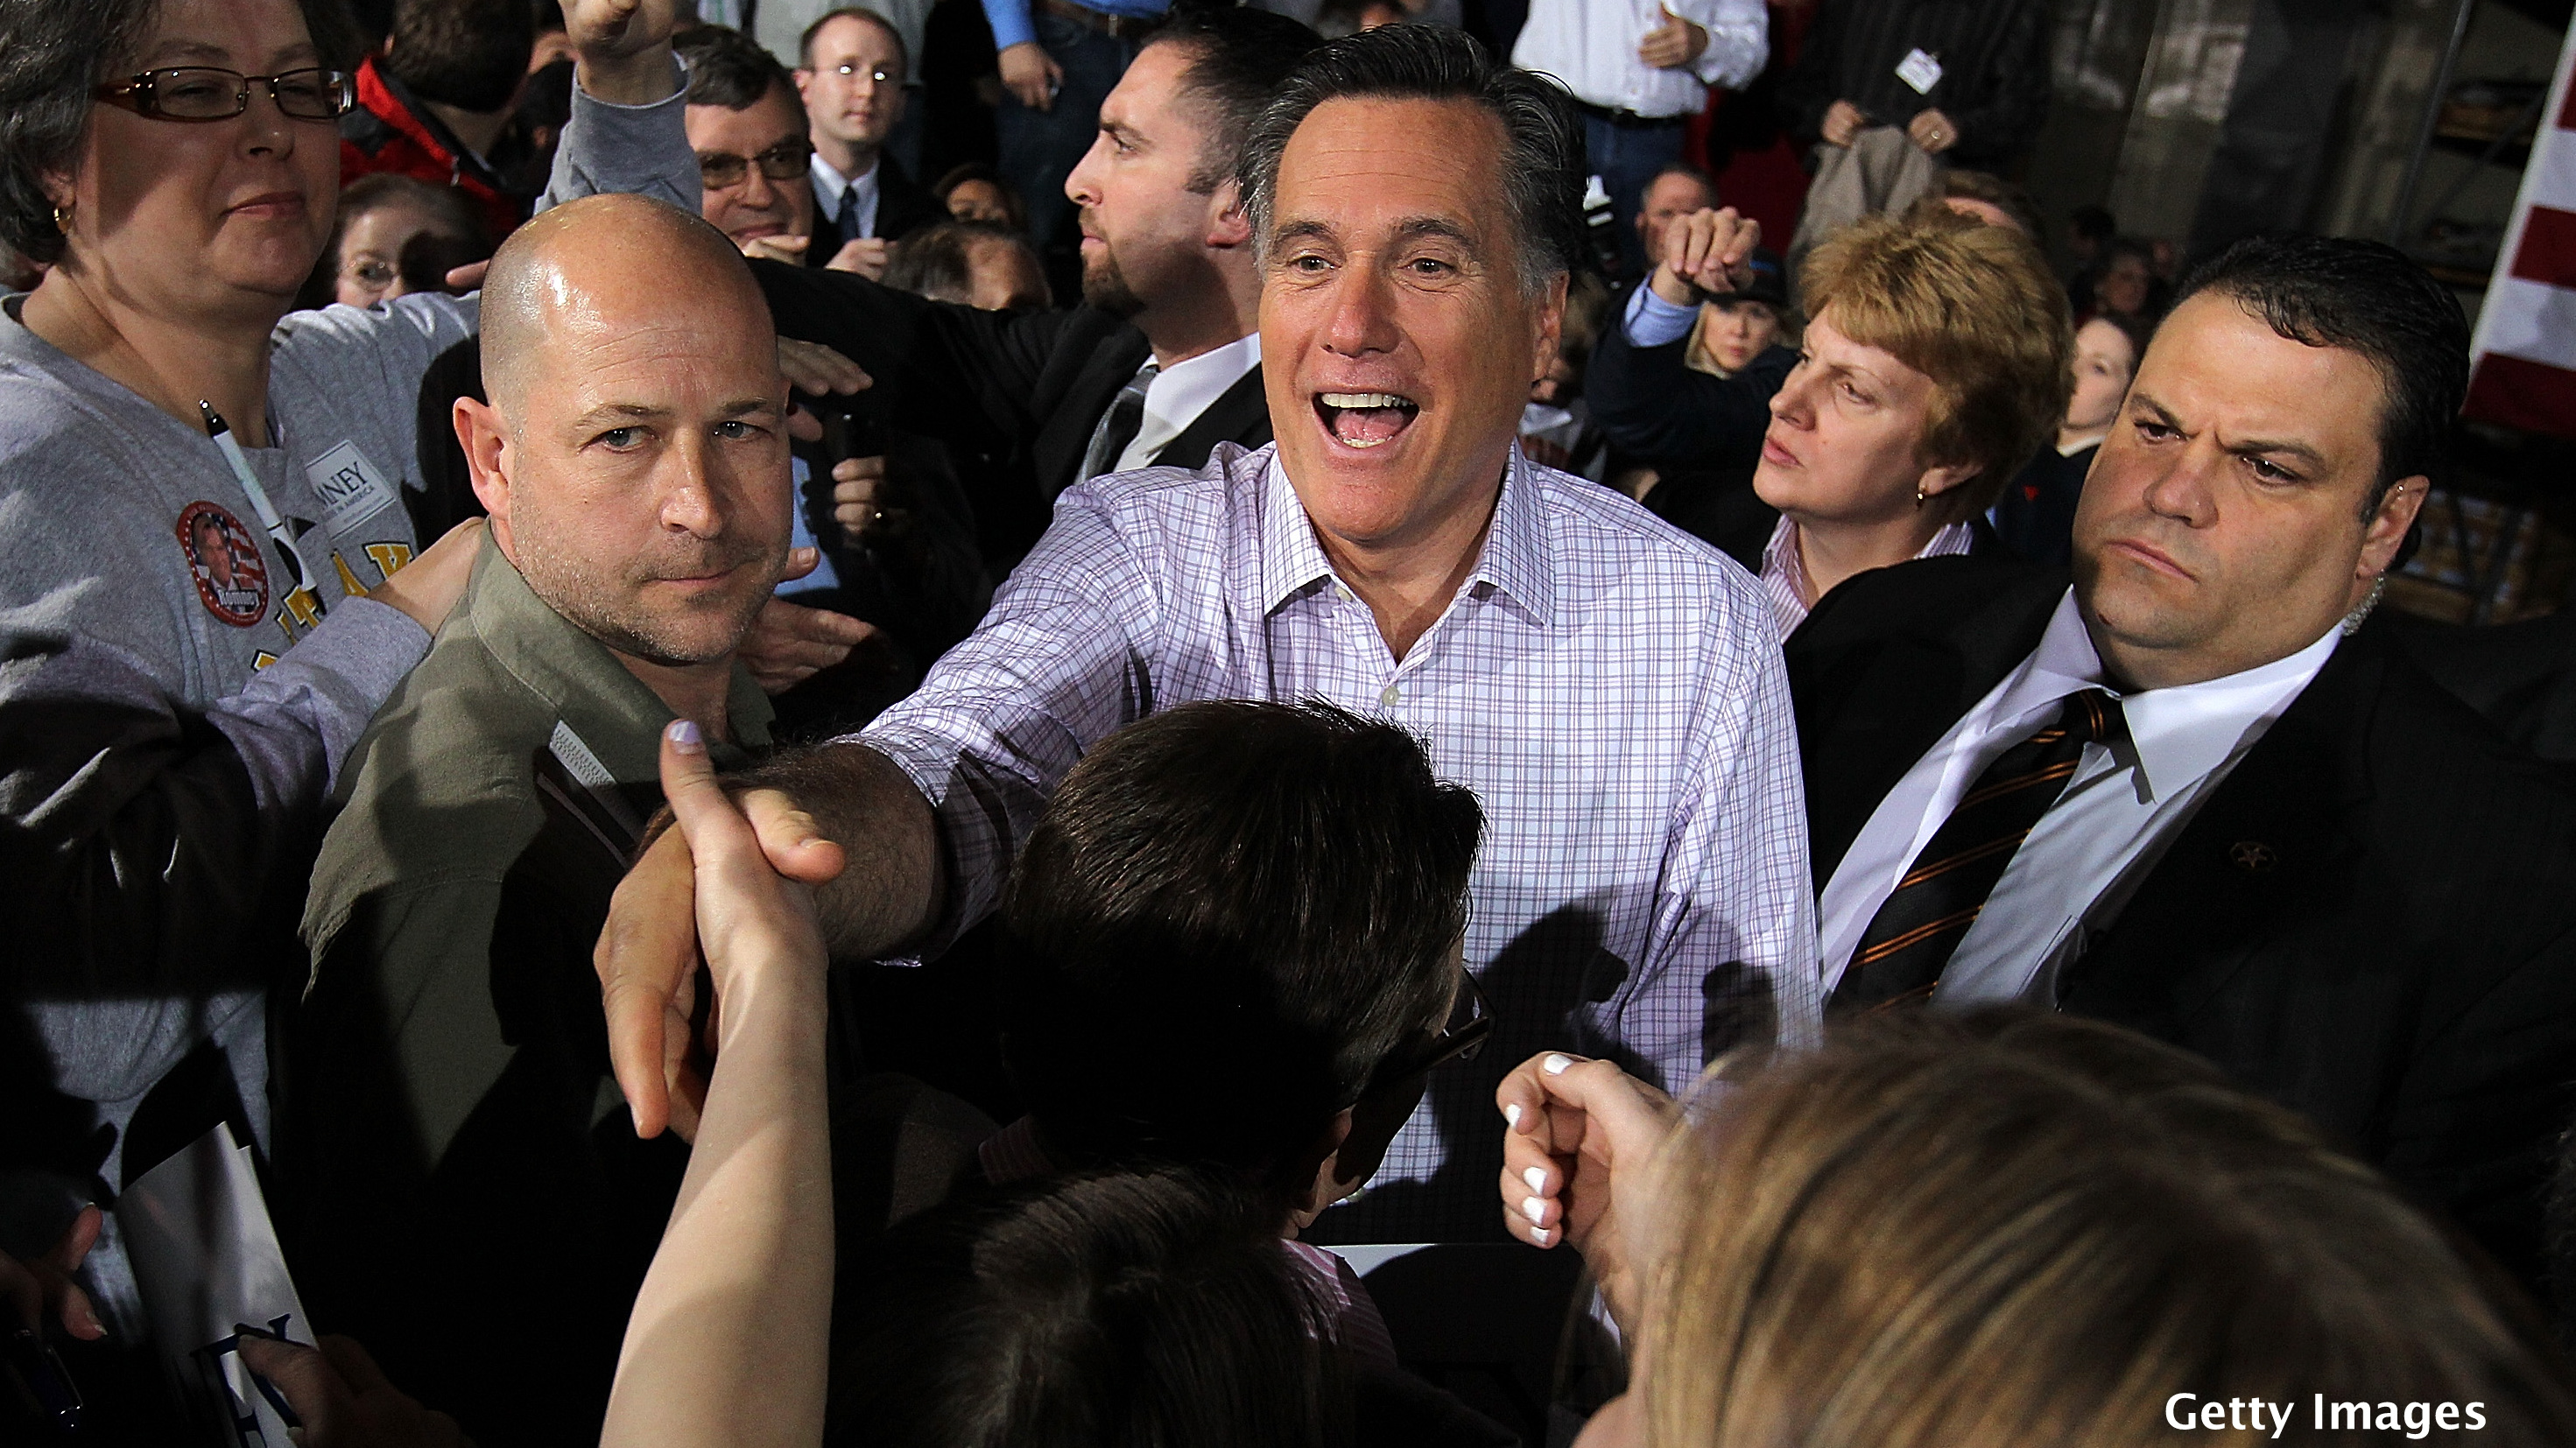 CNN projects Romney will win Washington state caucuses